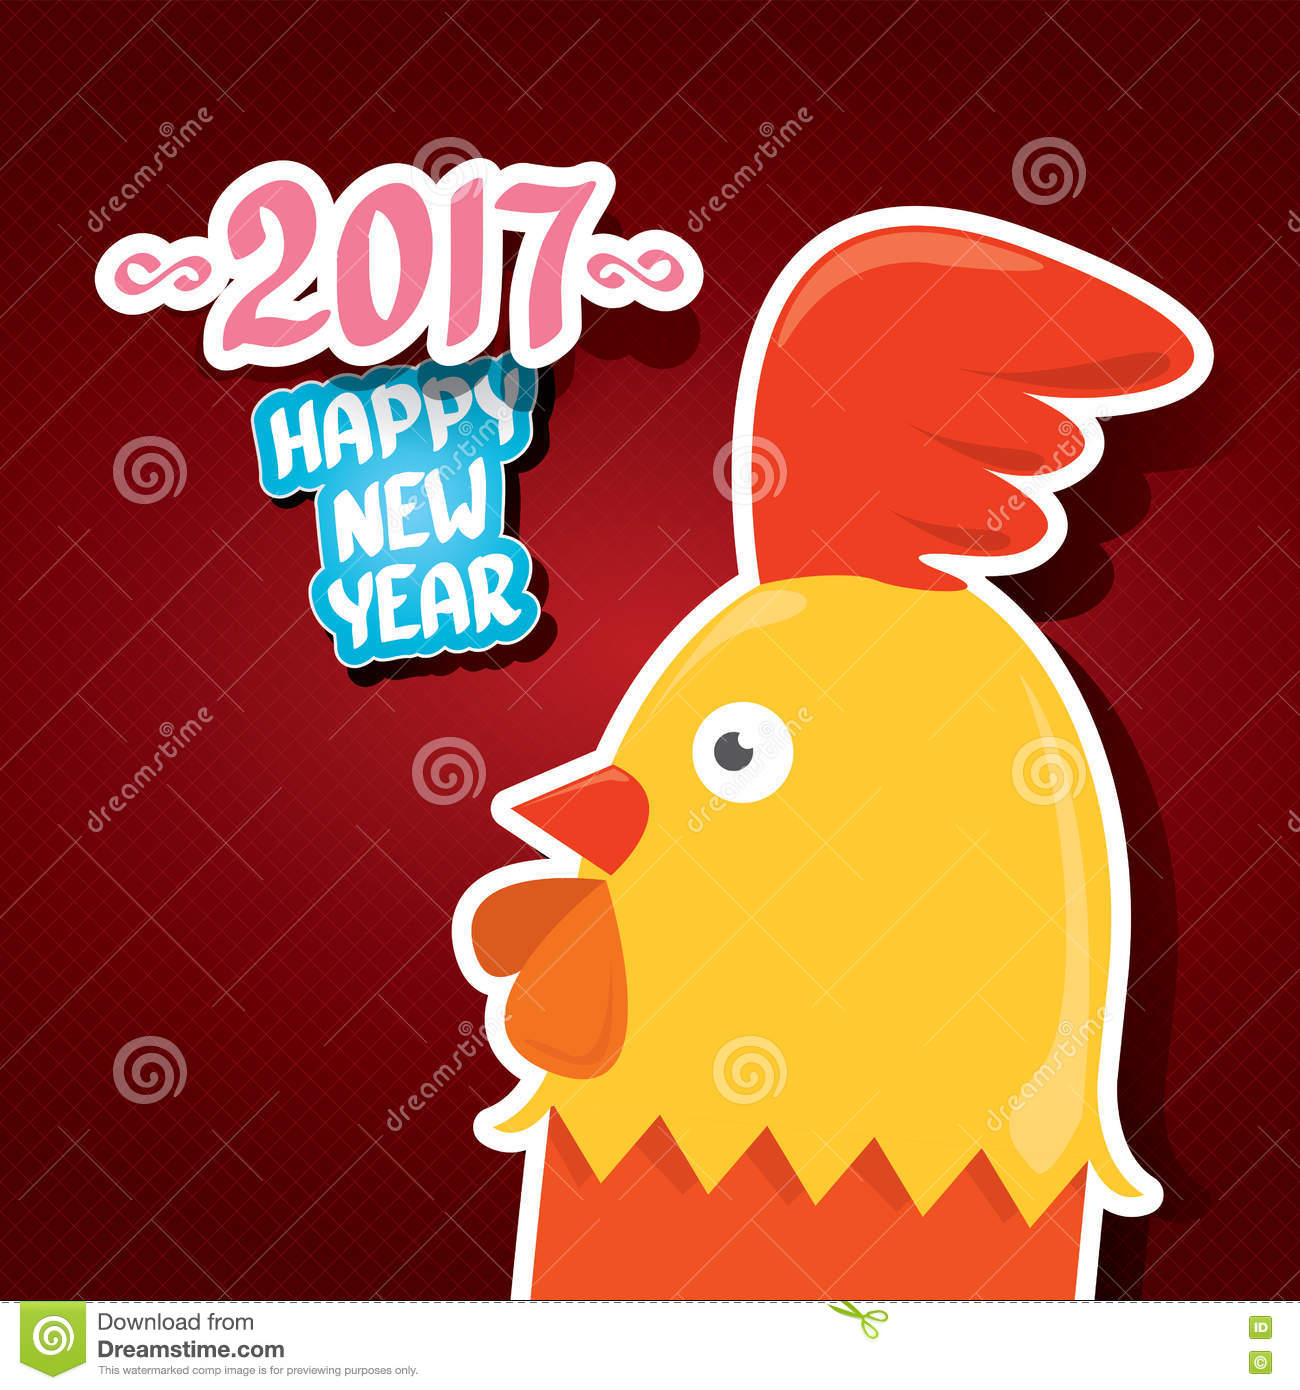 New year 2017 greeting pictures year of rooster happy chinese new year - Vector New Year 2017 With Cartoon Funny Rooster Happy Chinese